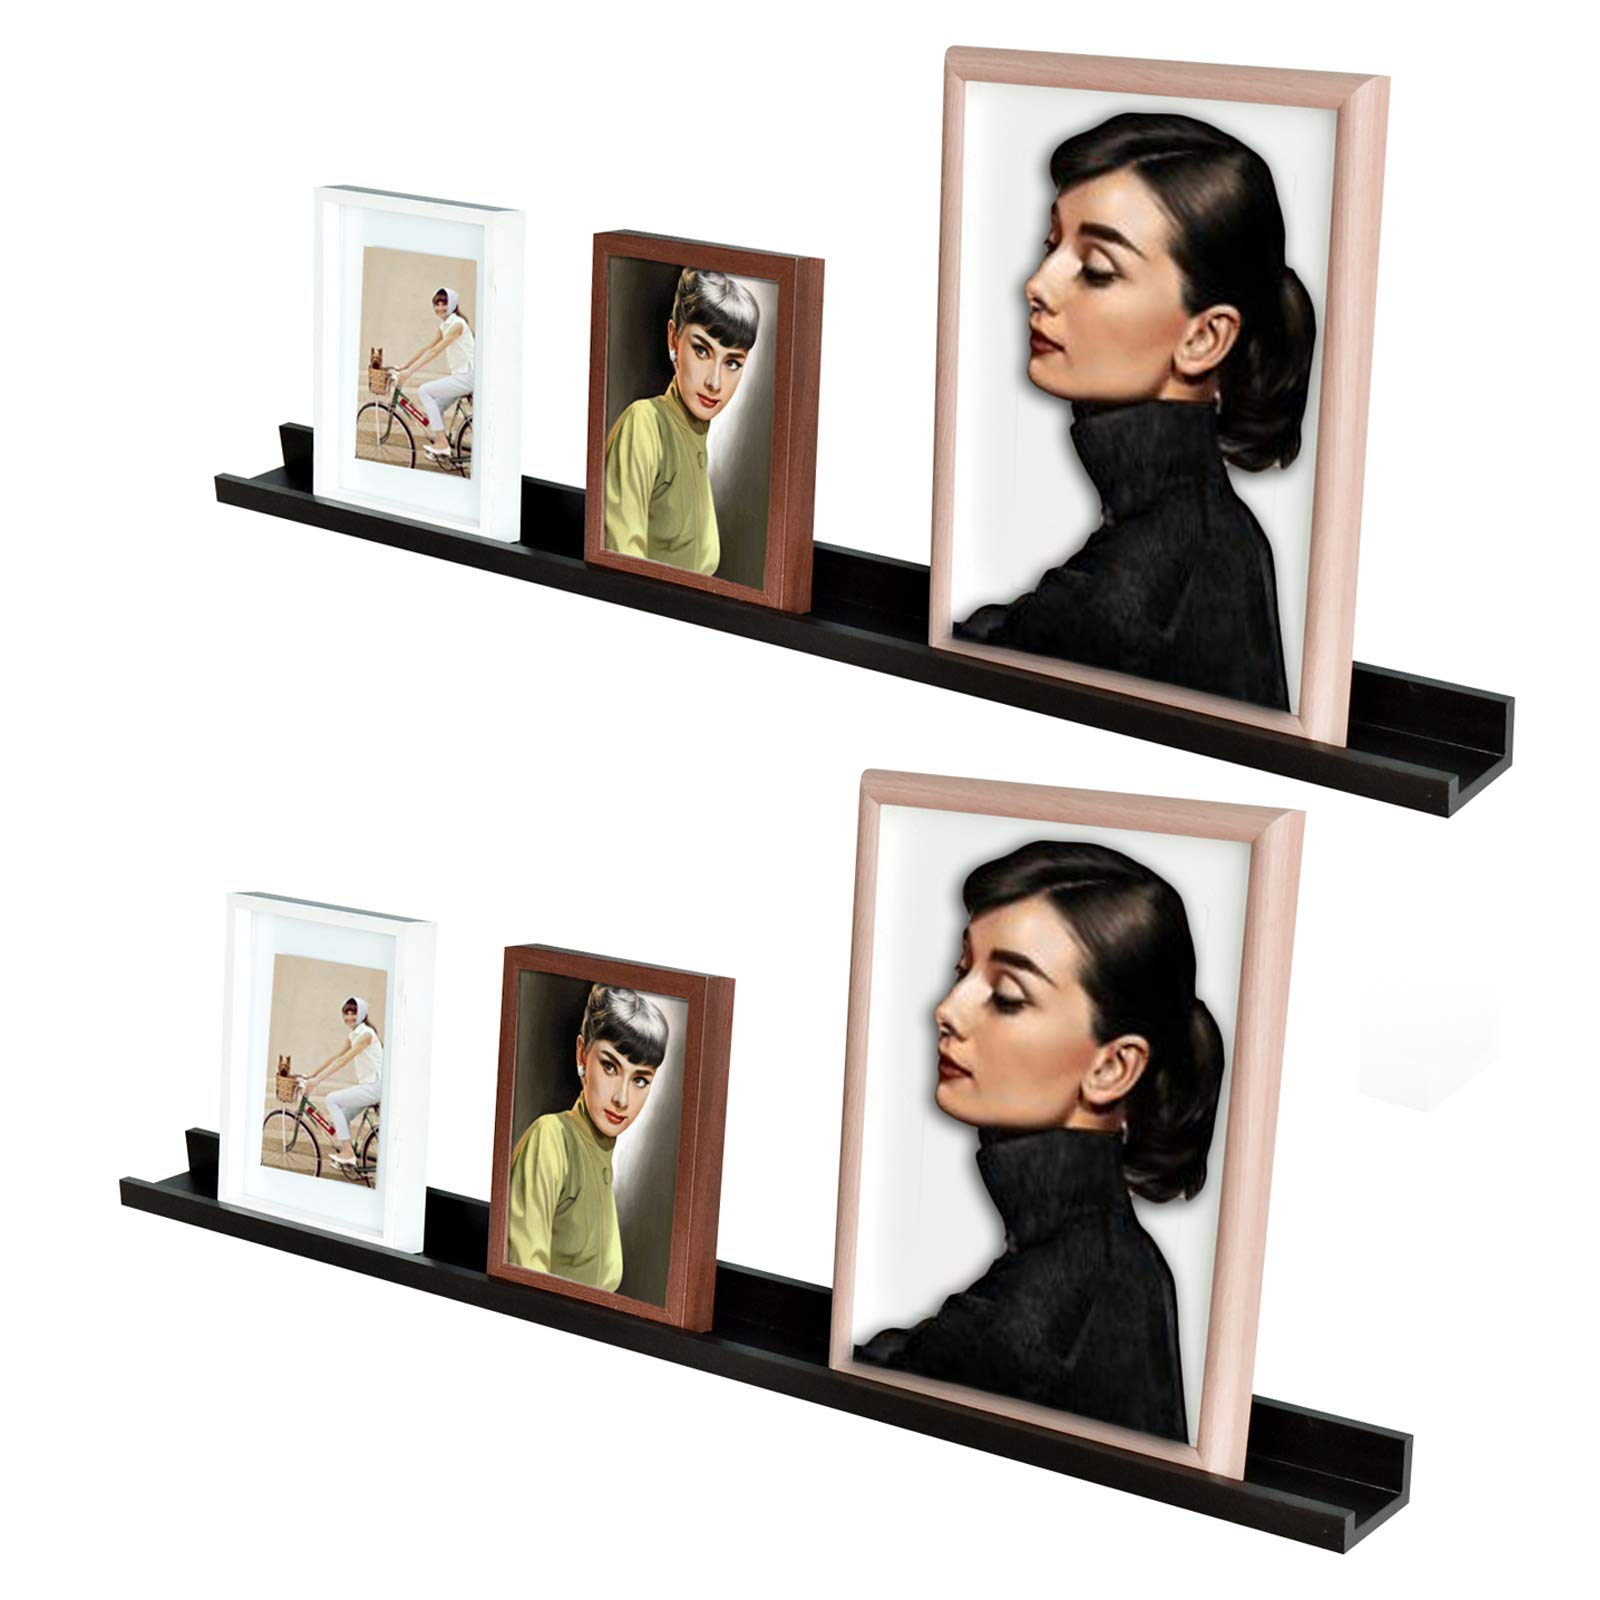 RANK Modern Photo Ledge Floating Shelves Wall Mounted Picture Frames Display Floating Shelf (Espresso, 2 x 48 inch)